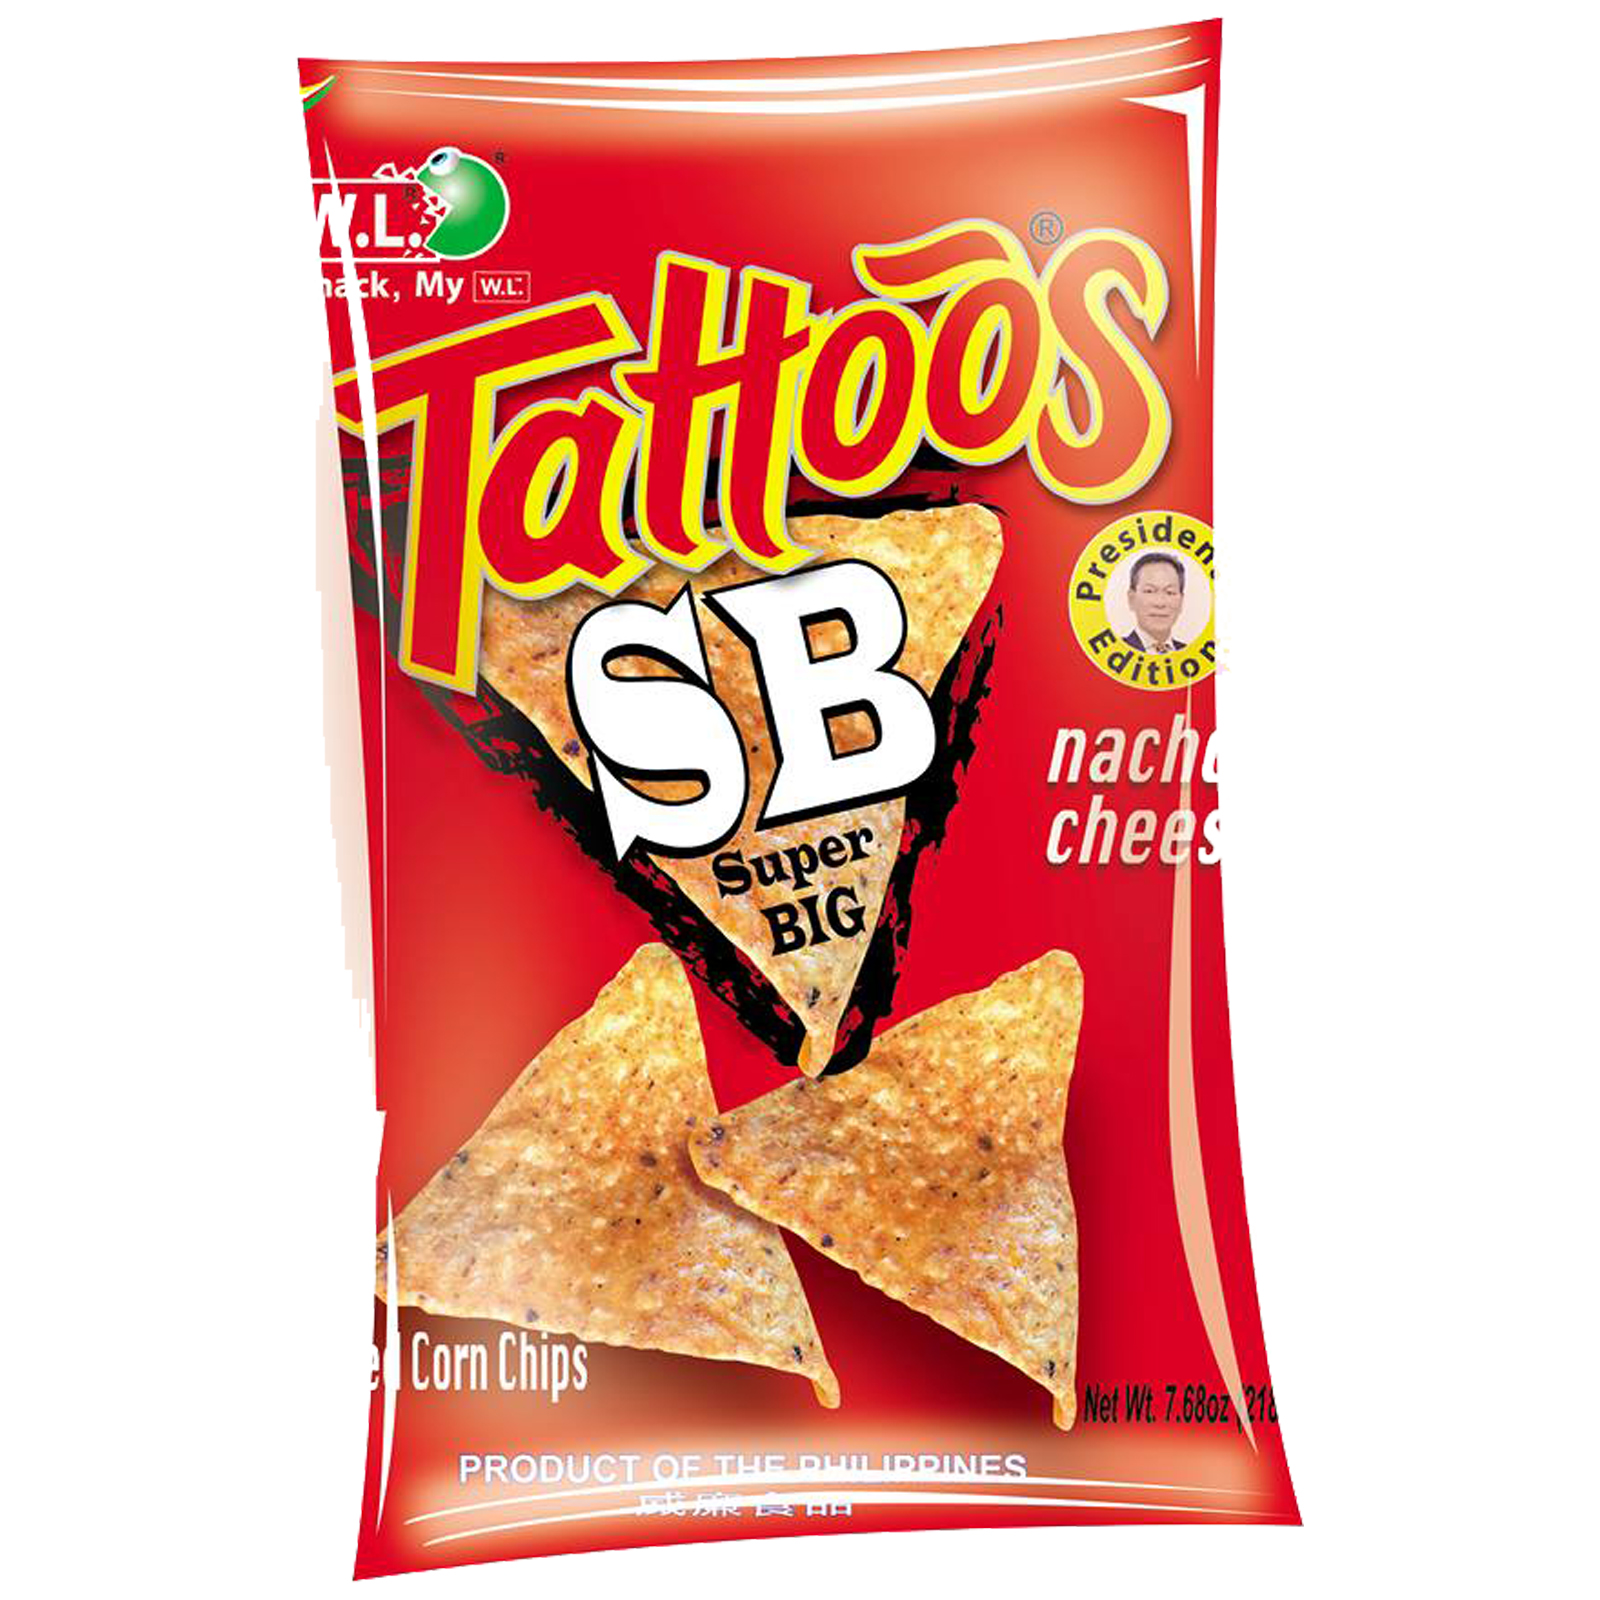 Tattoos SB Corn Chips Nacho Cheese 218g